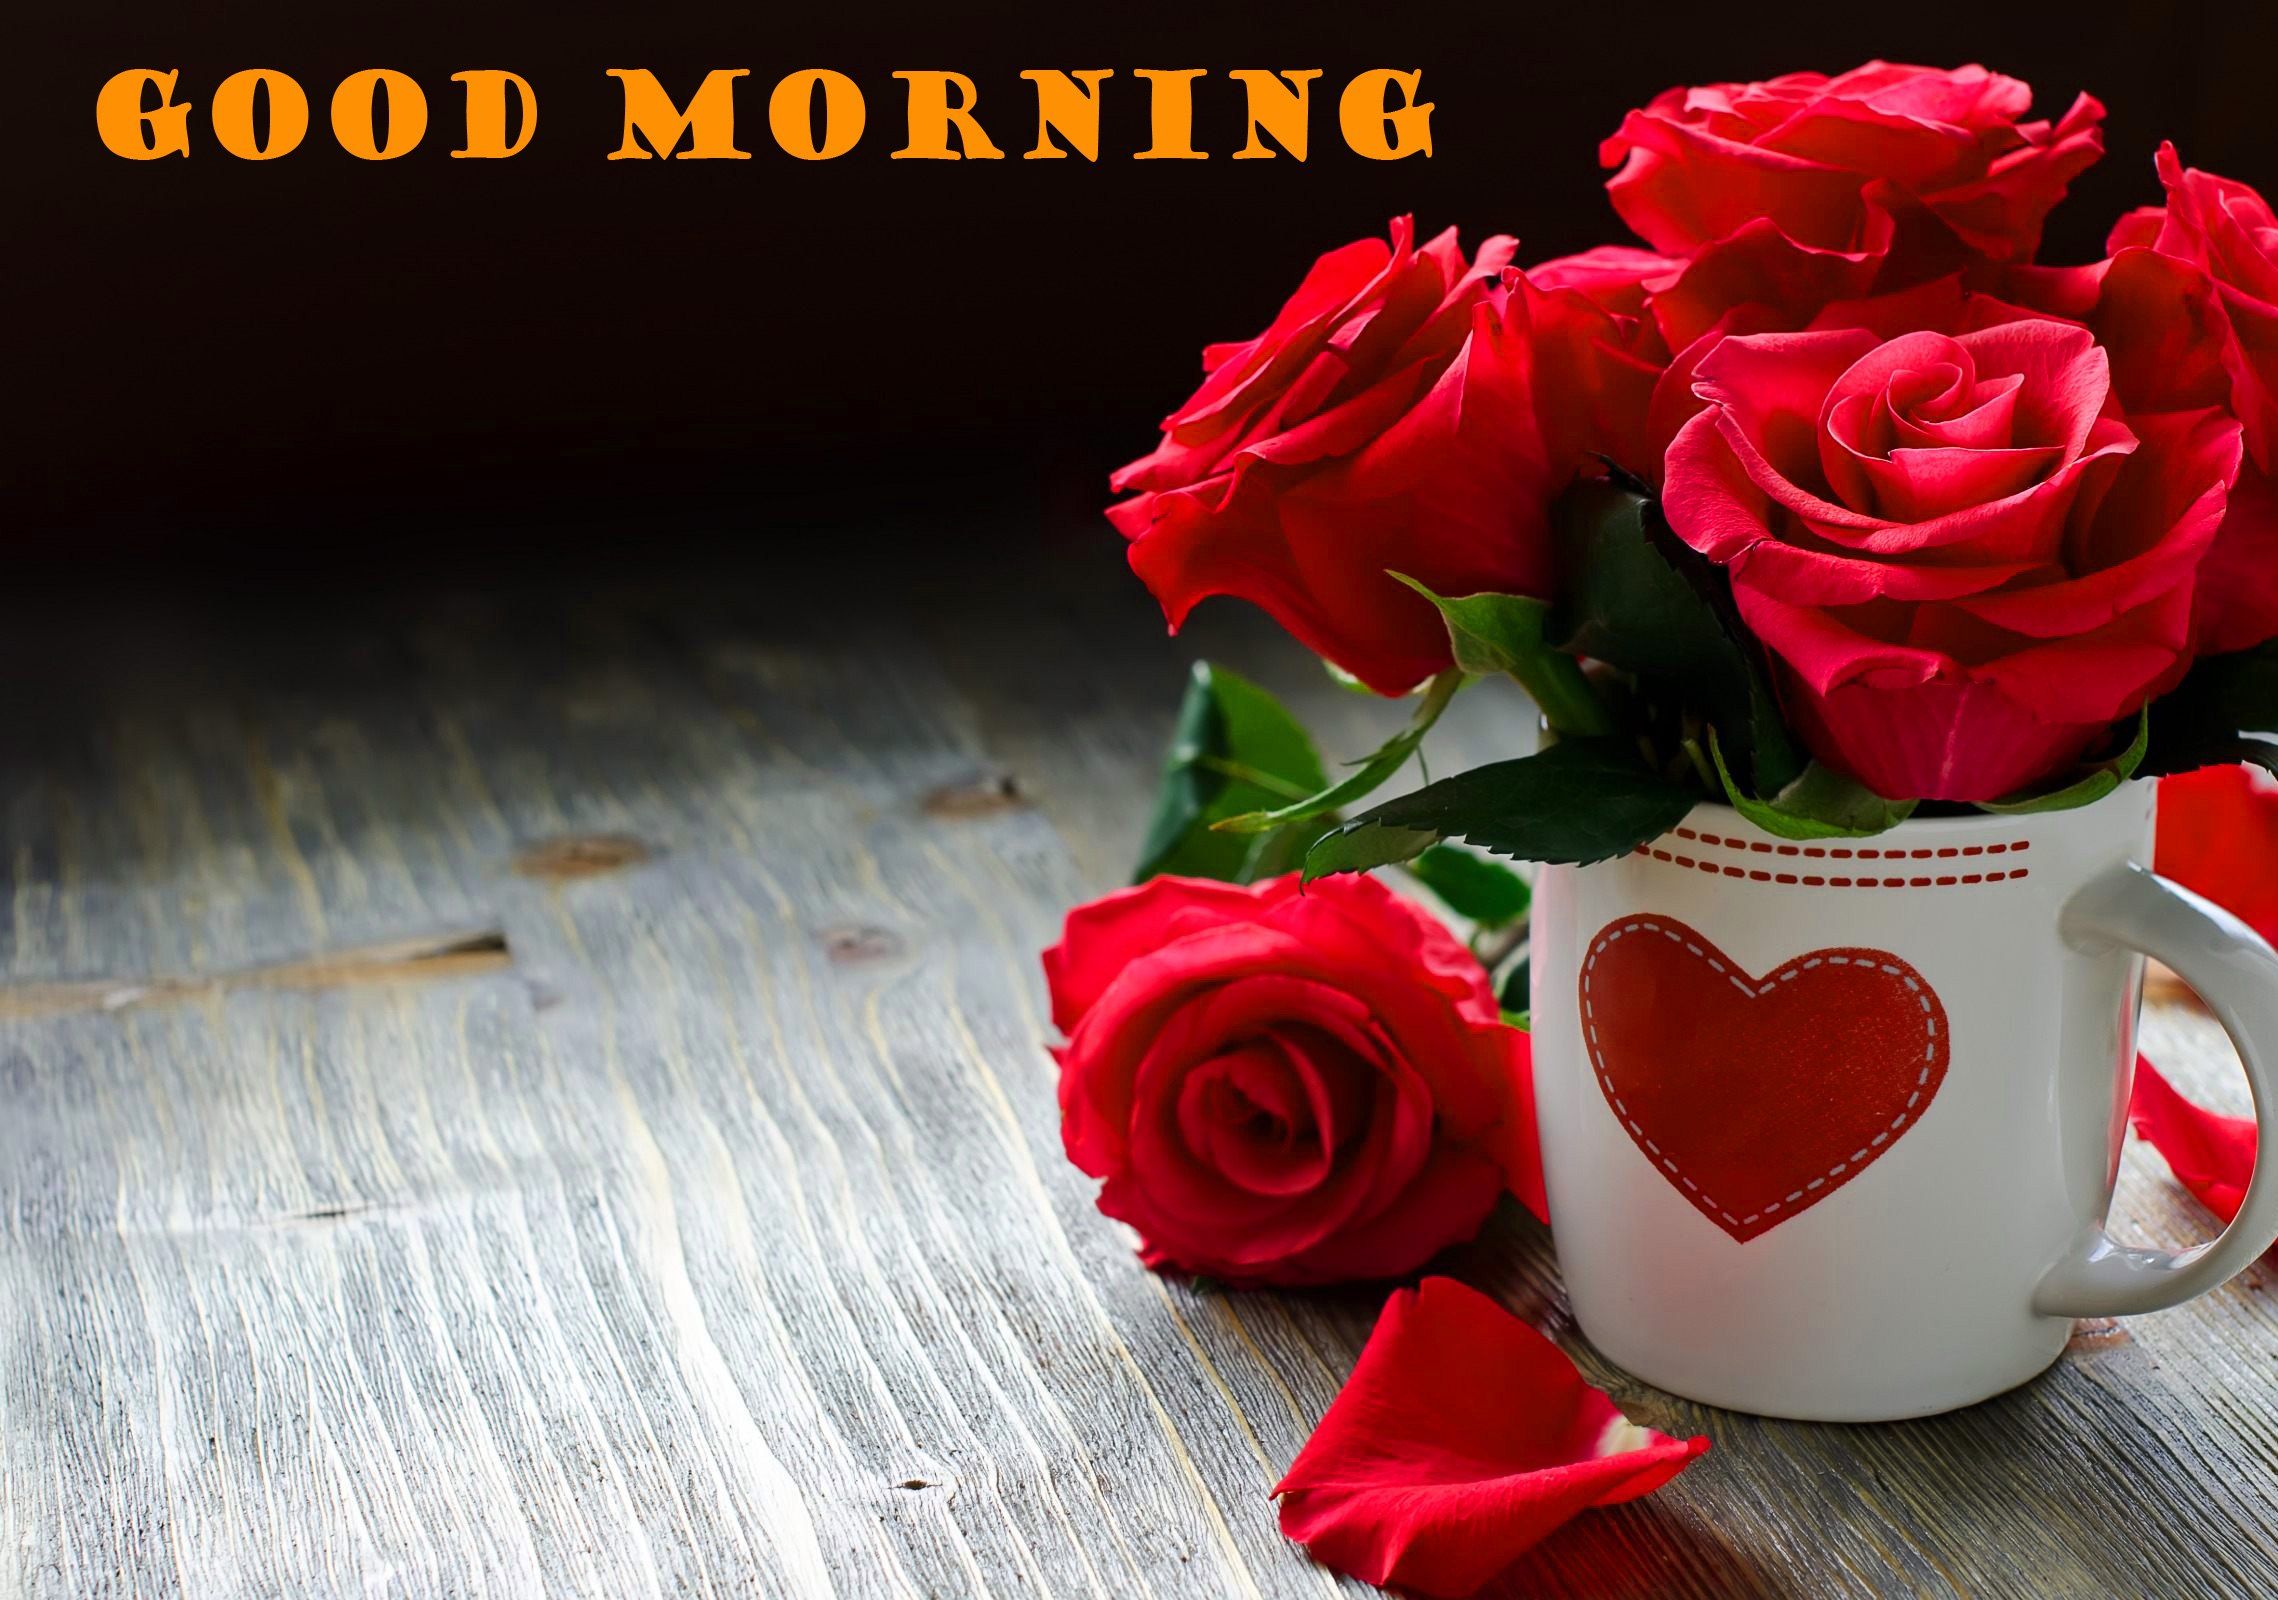 Good Morning Red Rose Wallpaper Pictures HD Download